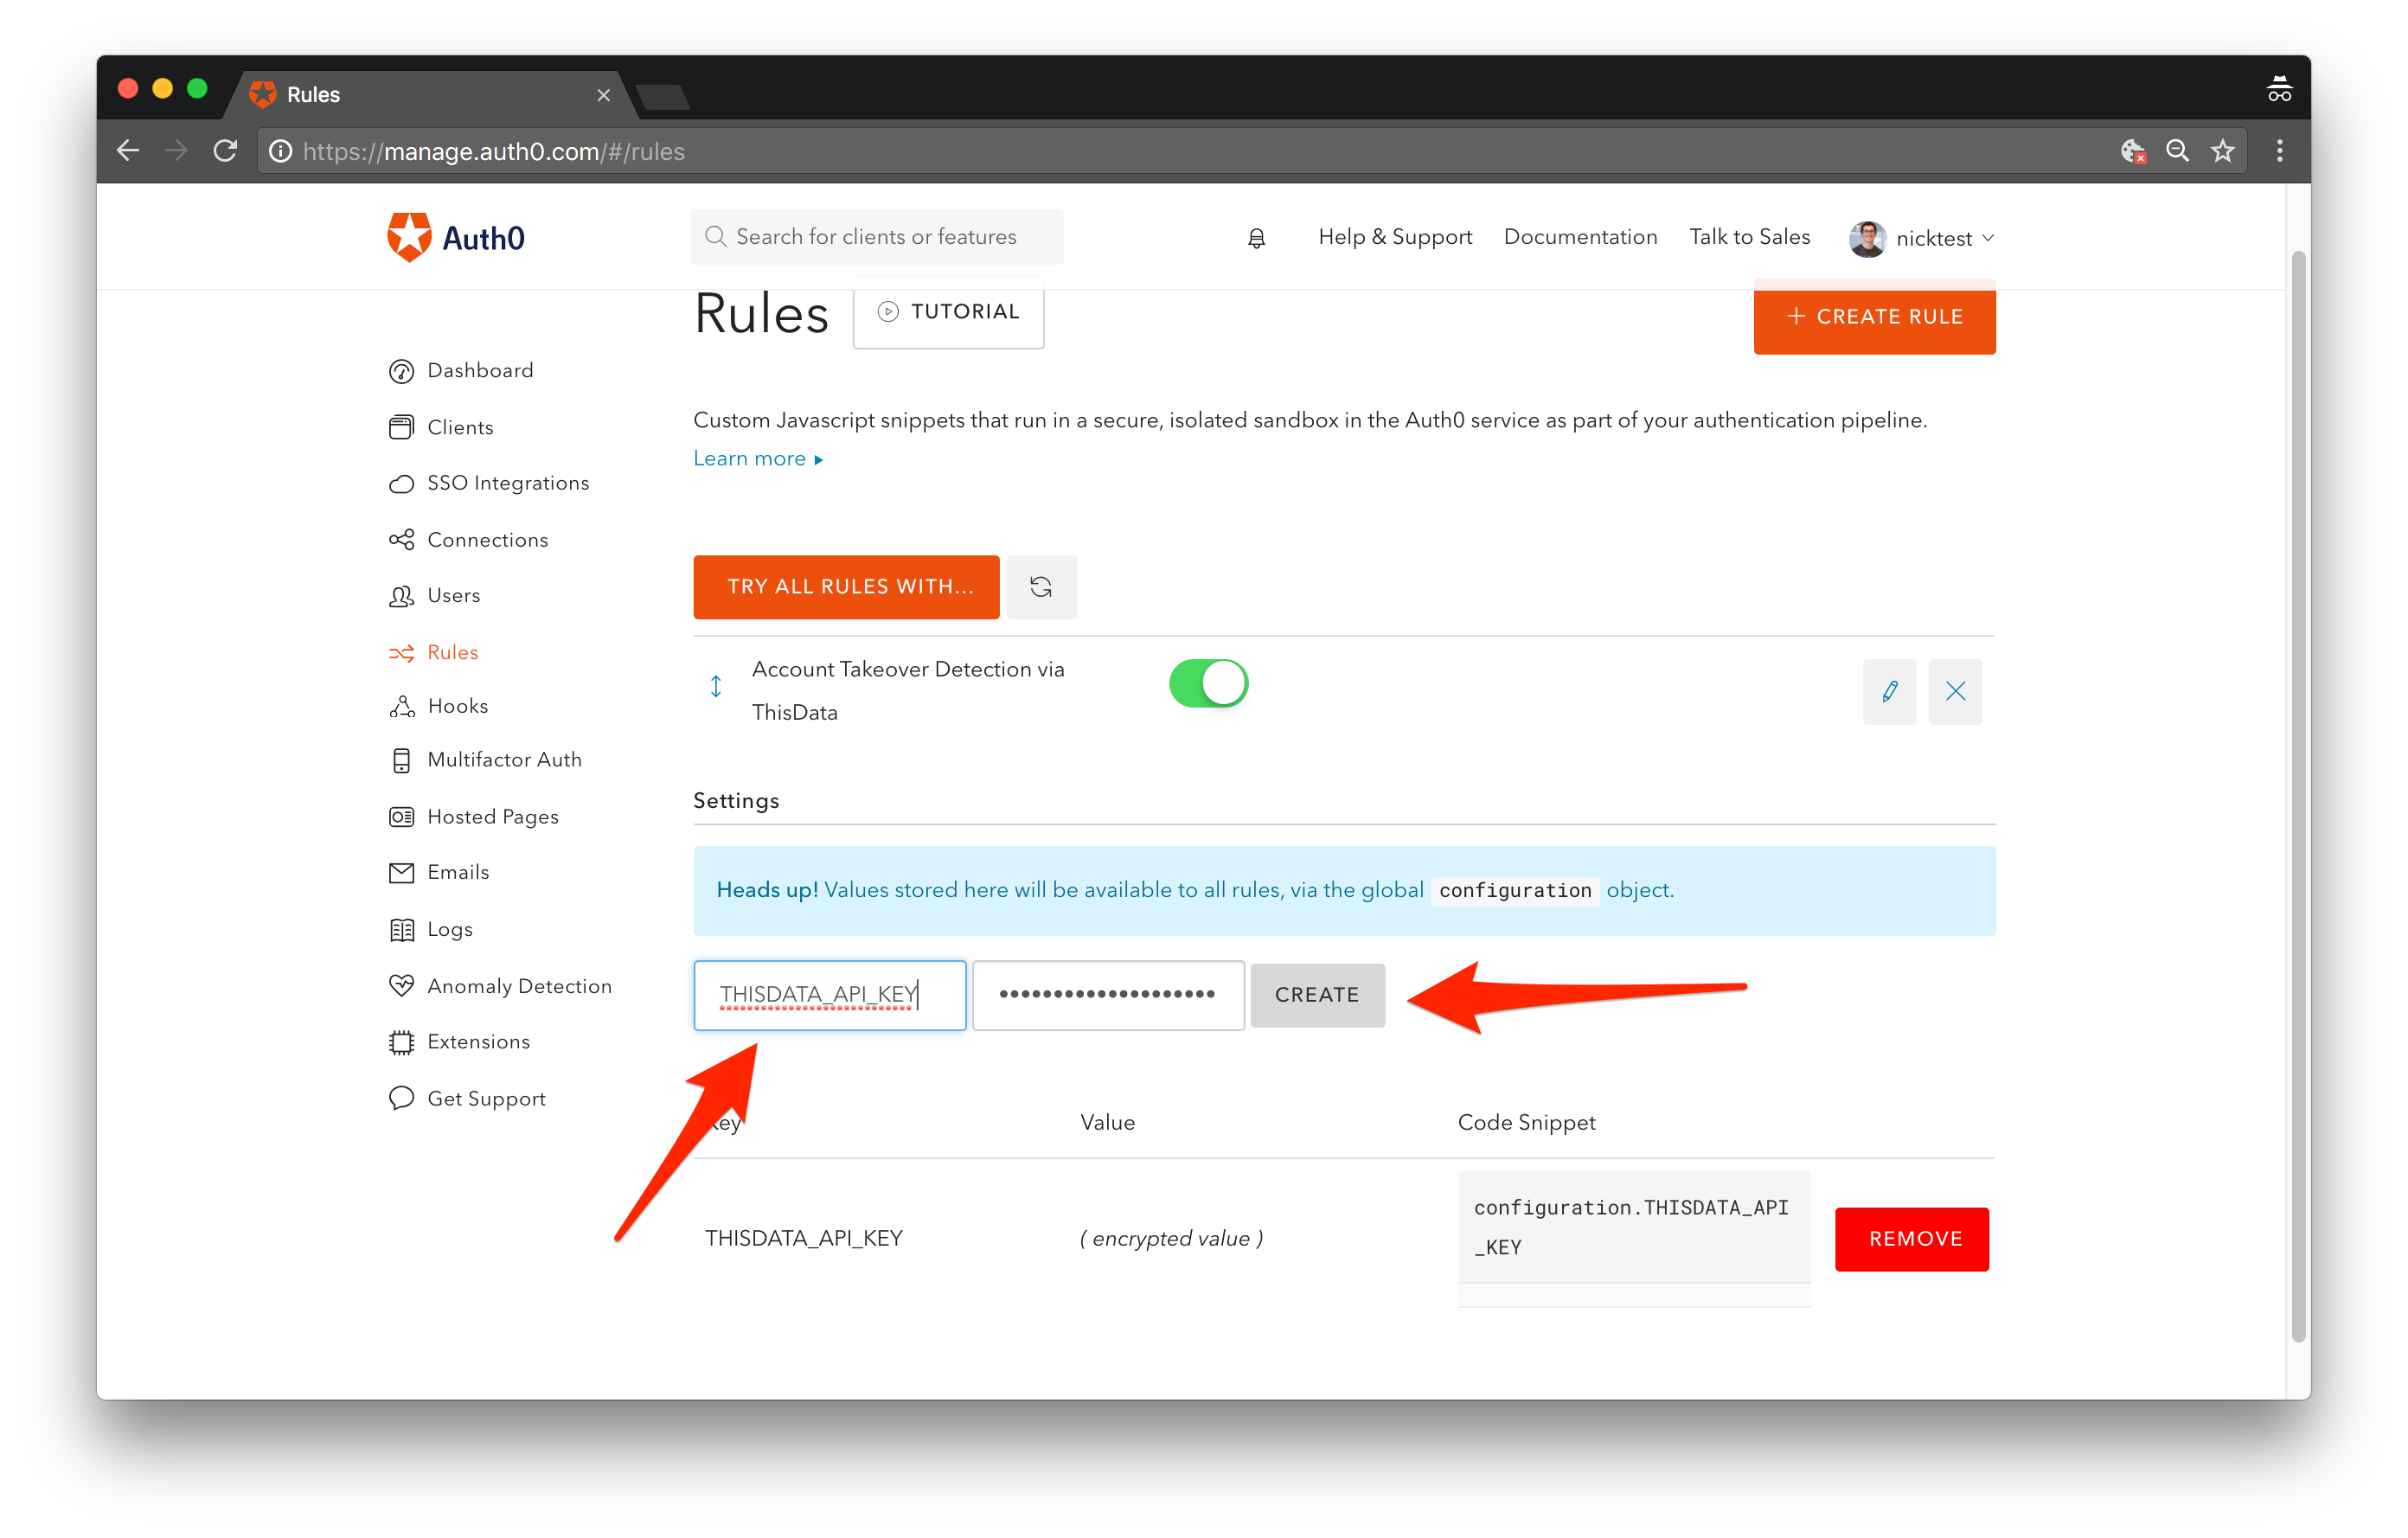 Paste ThisData API key into Auth0 rule settings